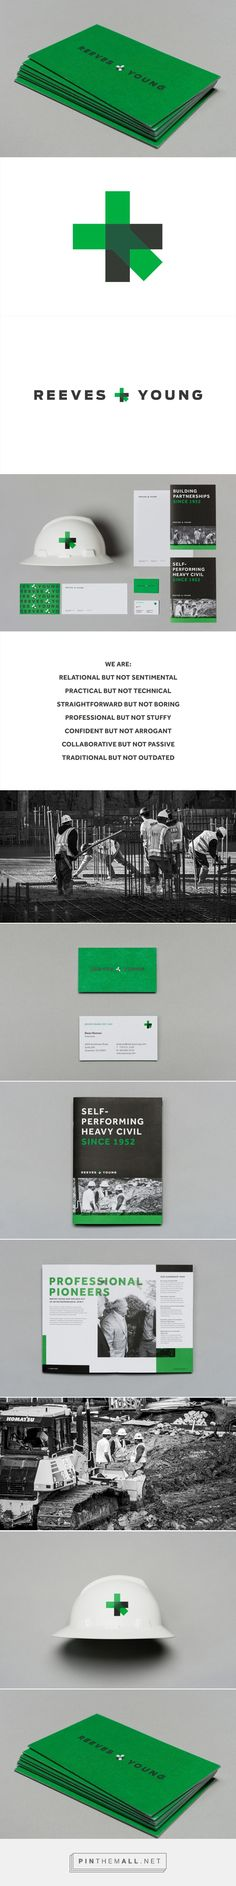 Brand Identity for Reeves & Young by Matchstic